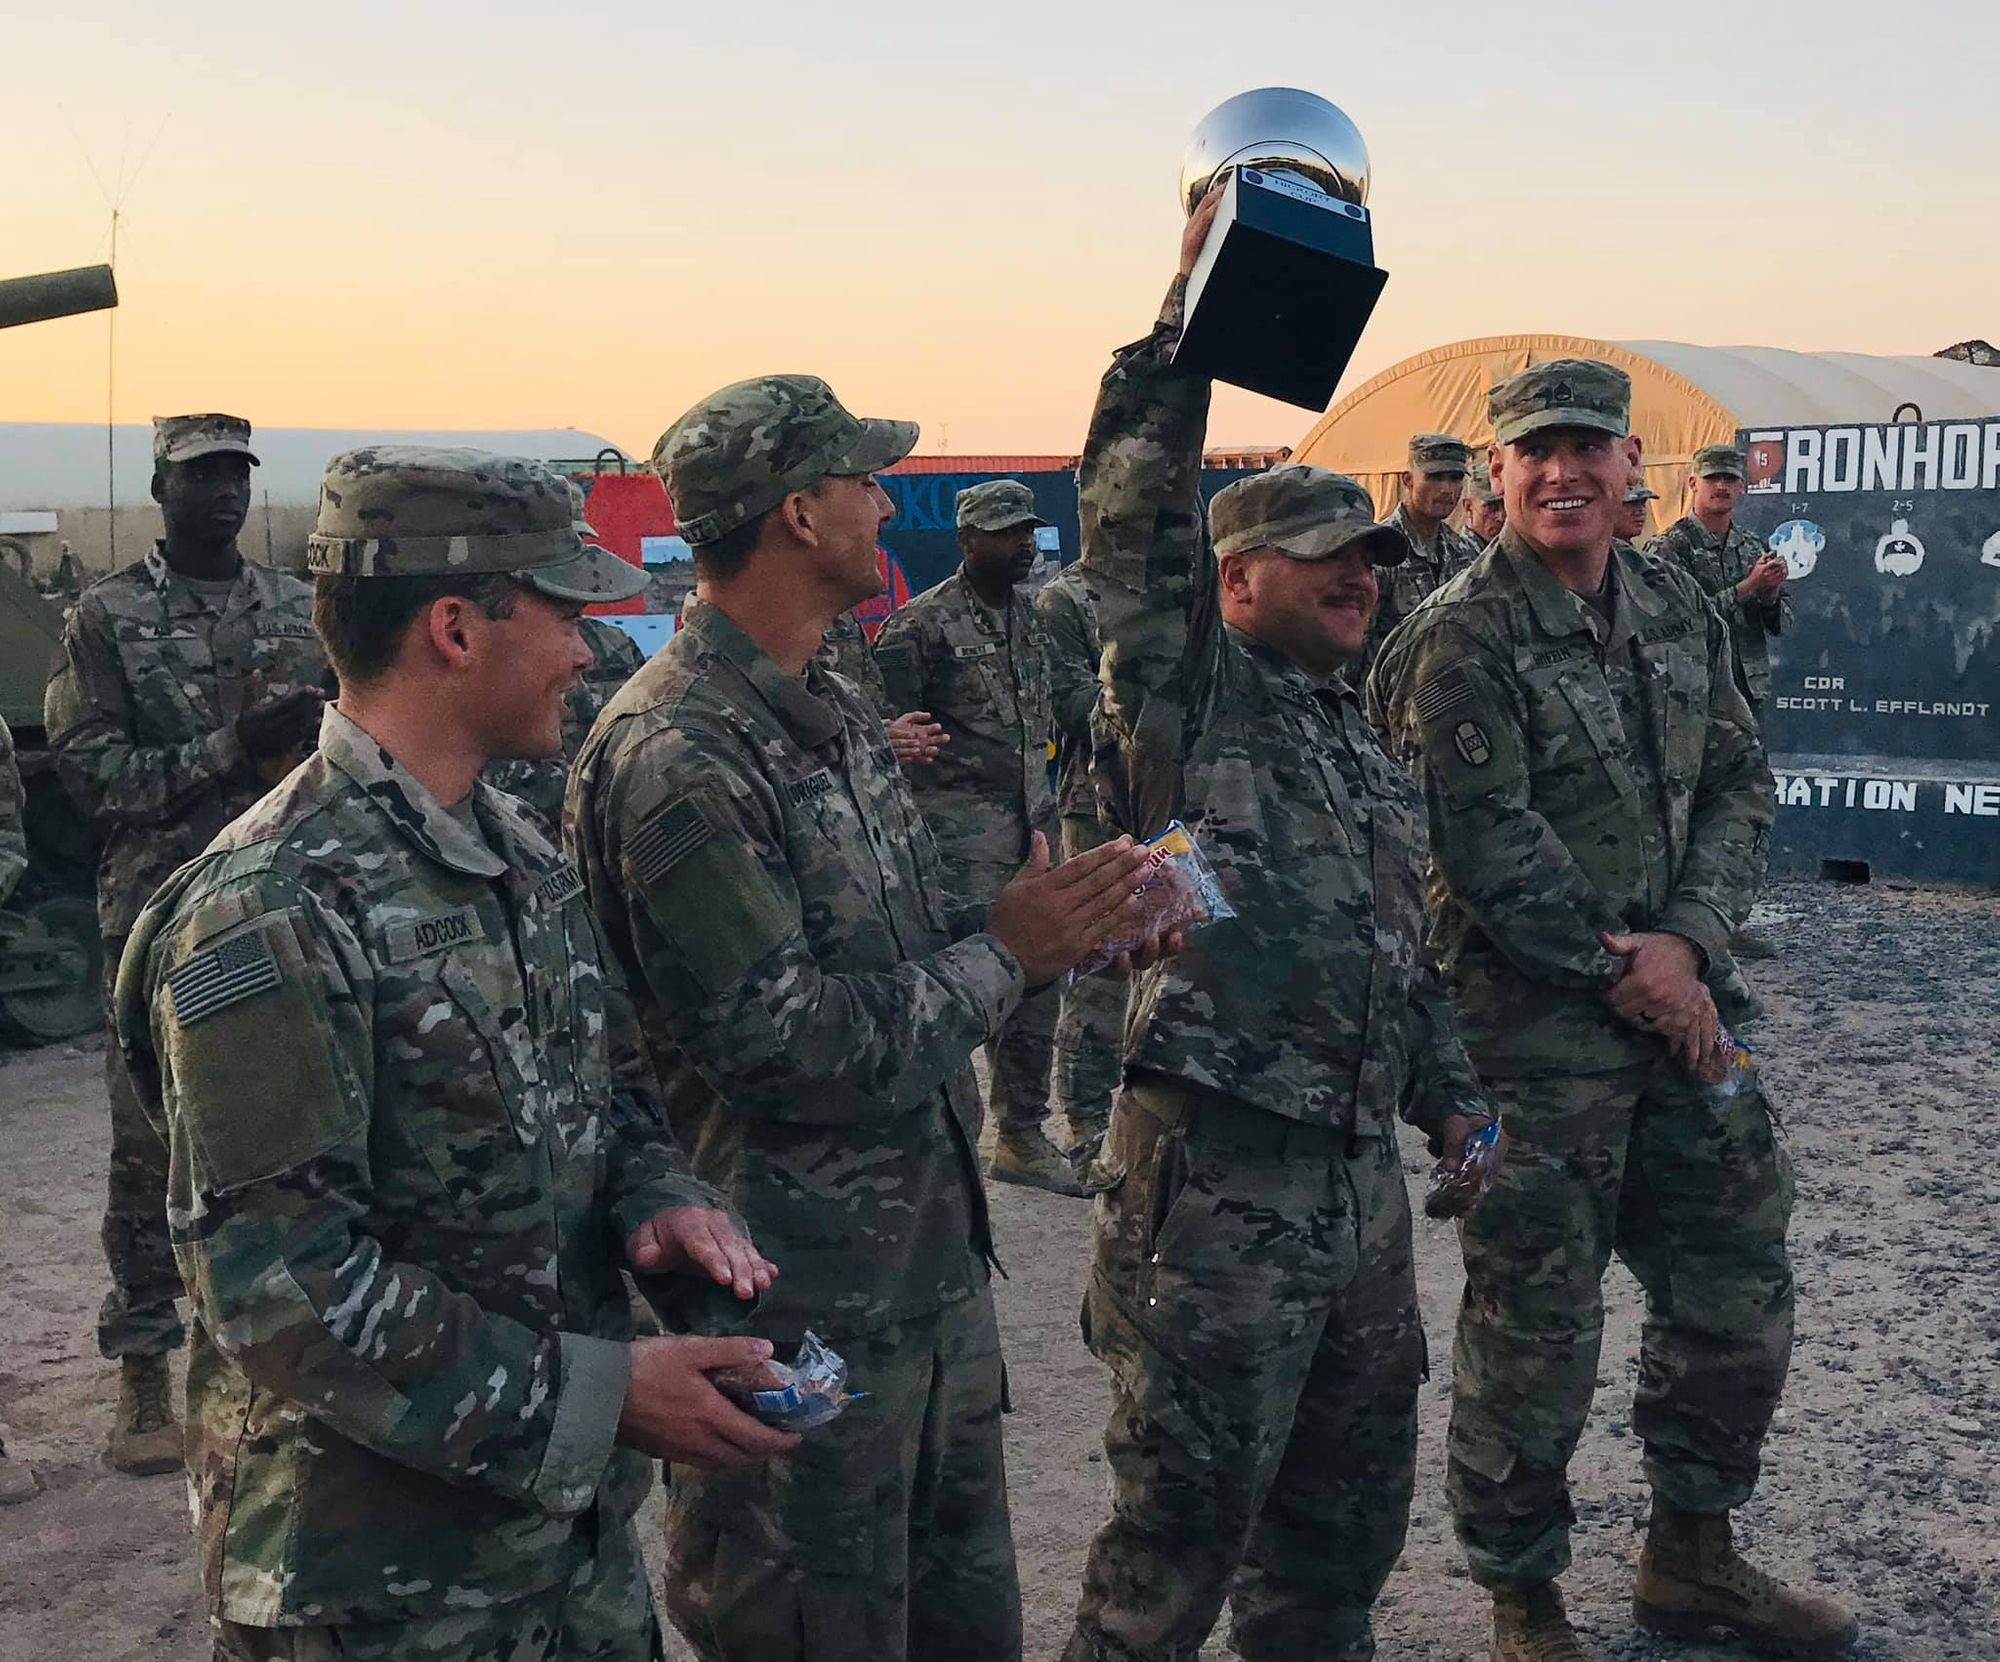 Congratulations To The 1 252 Armor Regiment Bravo Company Cobra Tankers For Winning The Hickory Cup Earlier This Month The Competi Bravo Company Army Regiment